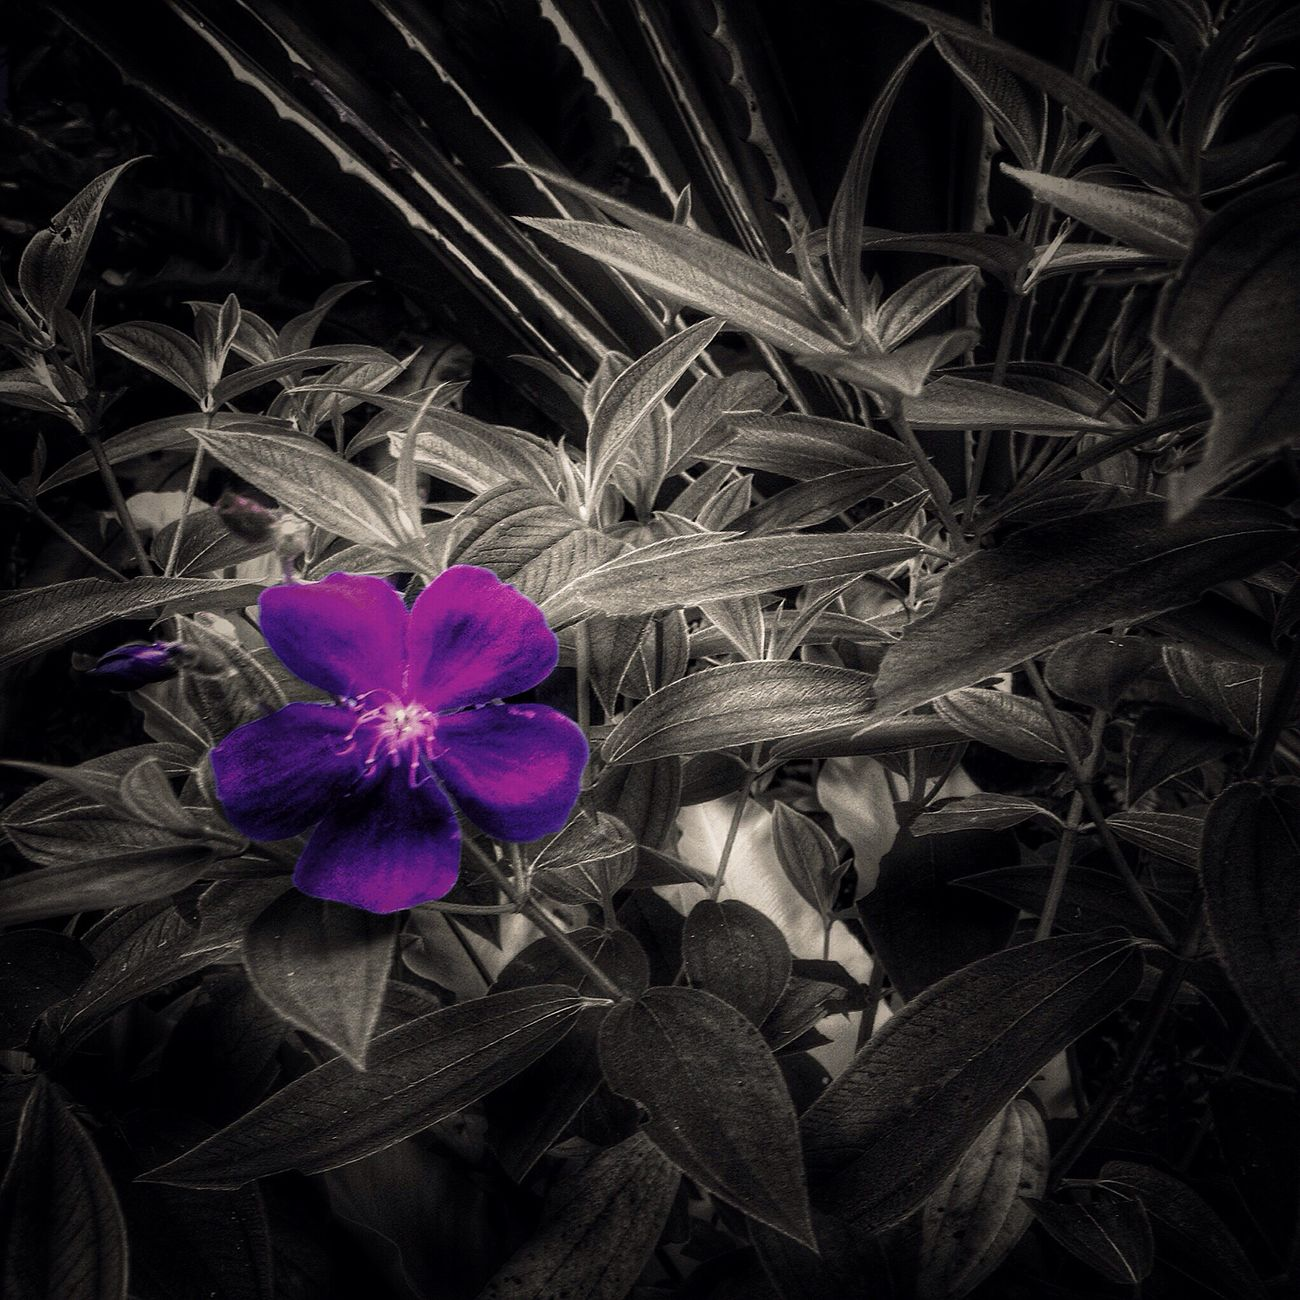 Black And White With A Splash Of Colour Flower Nature Fragility Growth Purple Beauty In Nature Flower Head Freshness Plant No People Close-up Outdoors Day EyeEmNewHere Macro Nature Macro_flower Macro_captures Bnw EyeEm Gallery EyeEmFlower